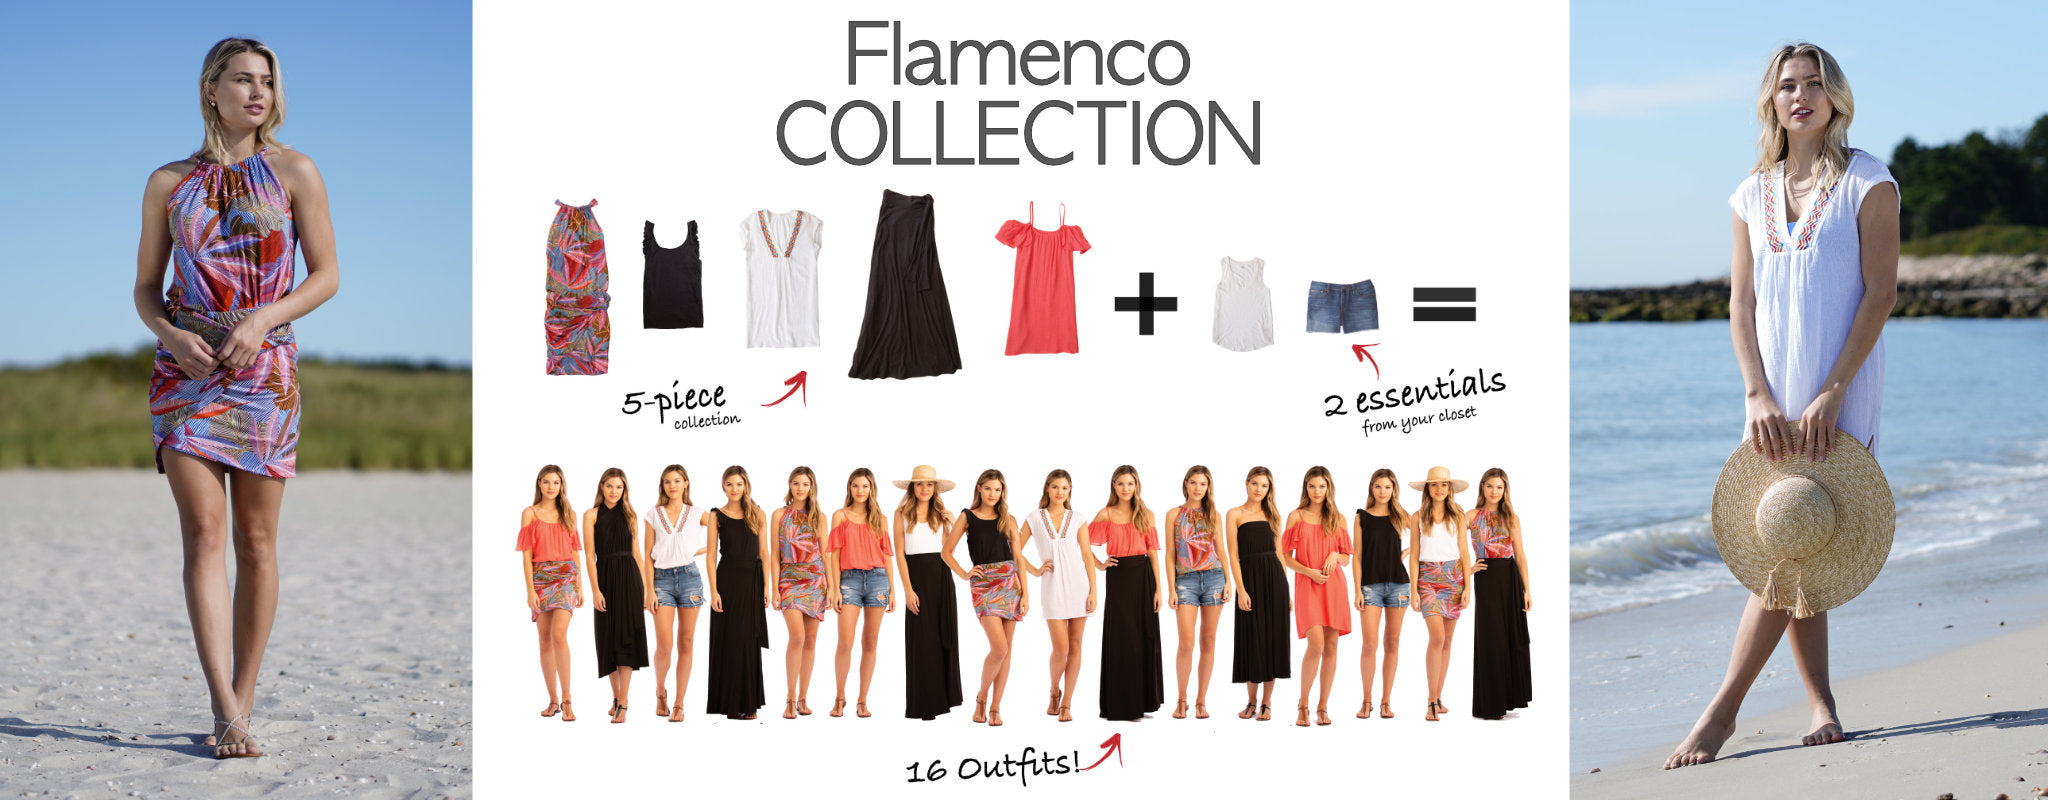 Flamenco Collection: 5 items = 16 outfits